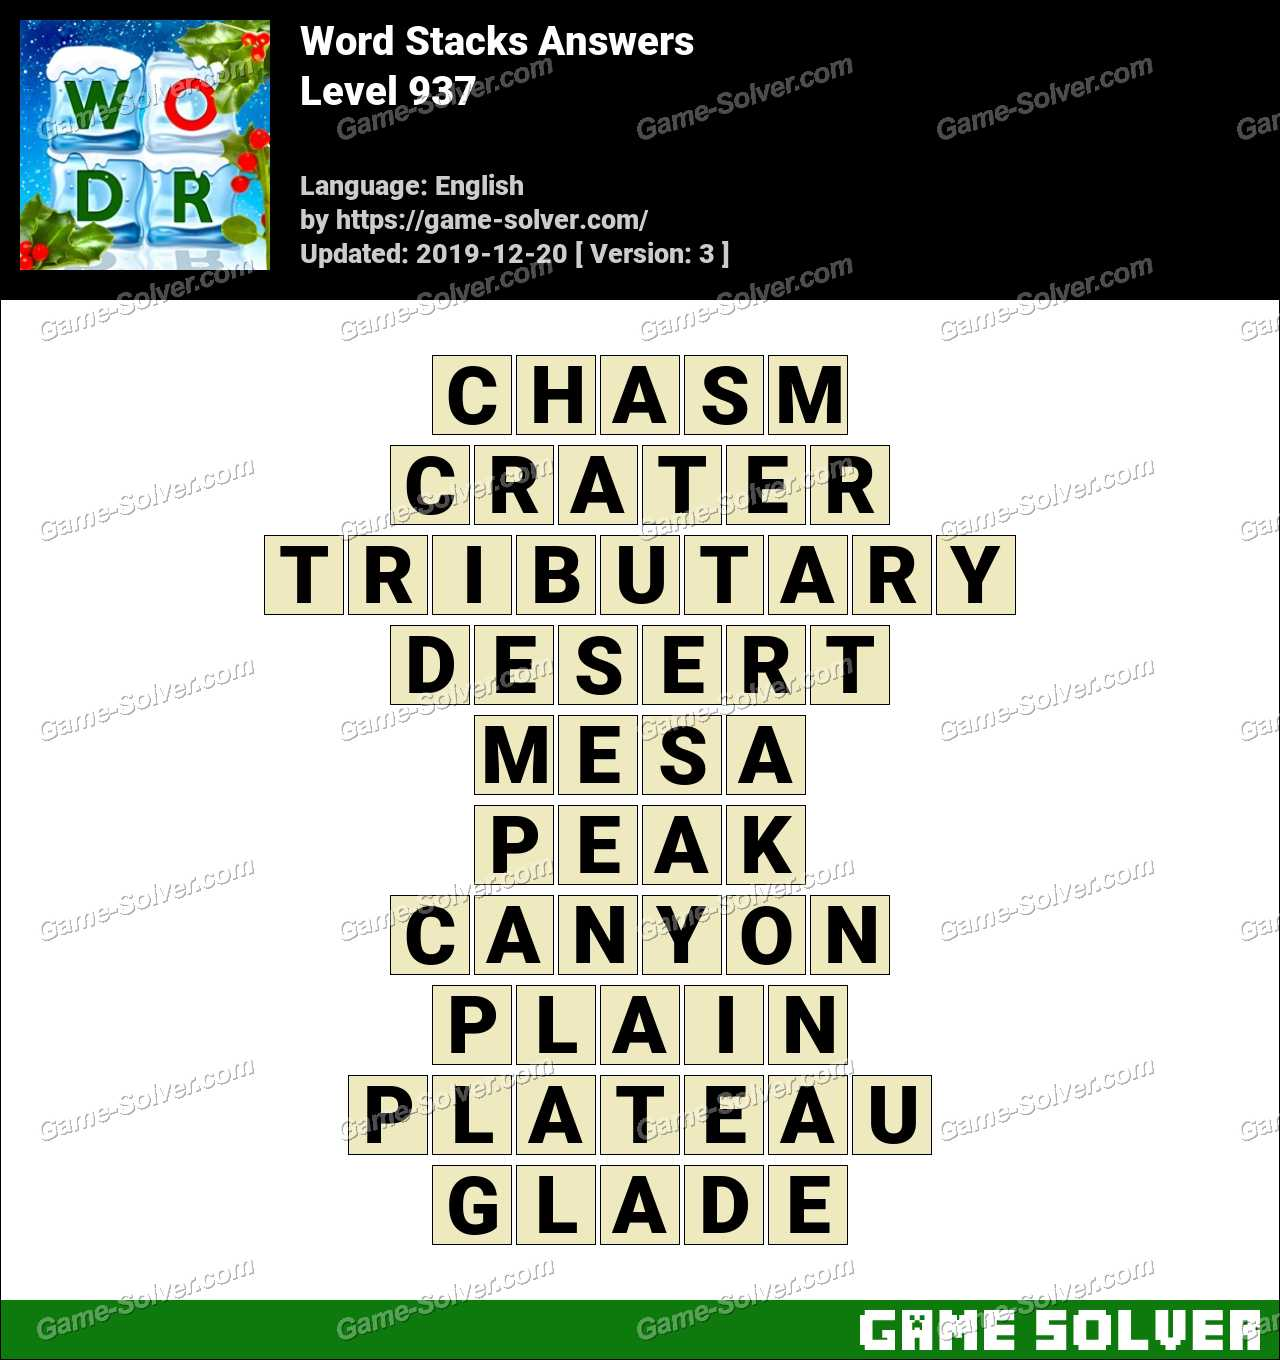 Word Stacks Level 937 Answers